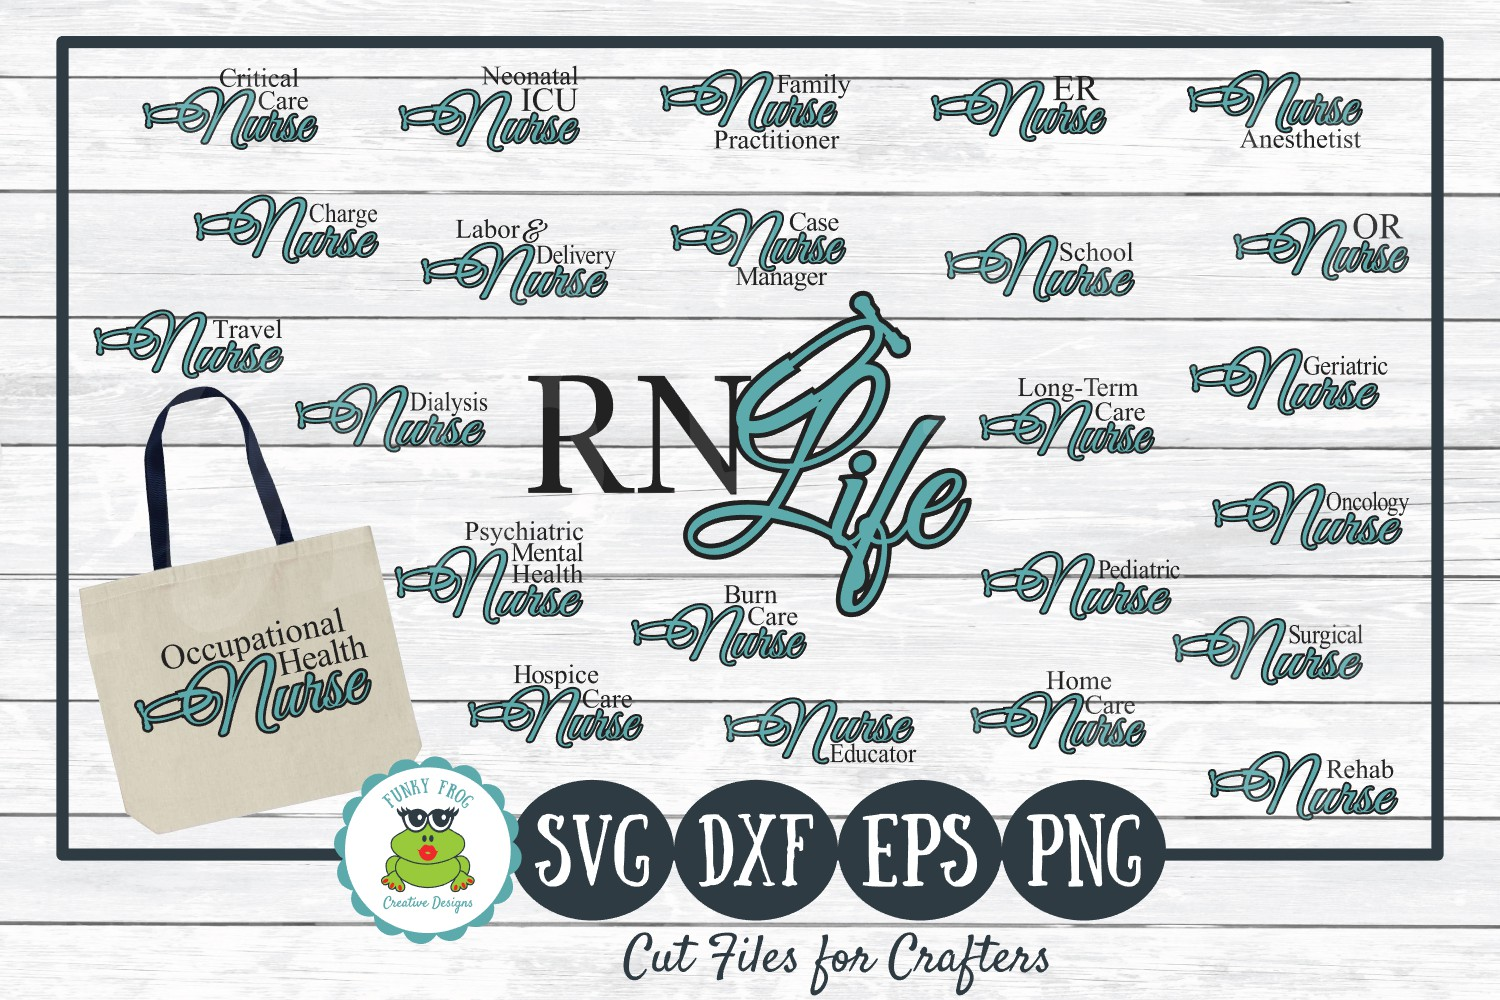 Nursing Titles, Types of Nurses Bundle SVG Cut Files example image 1